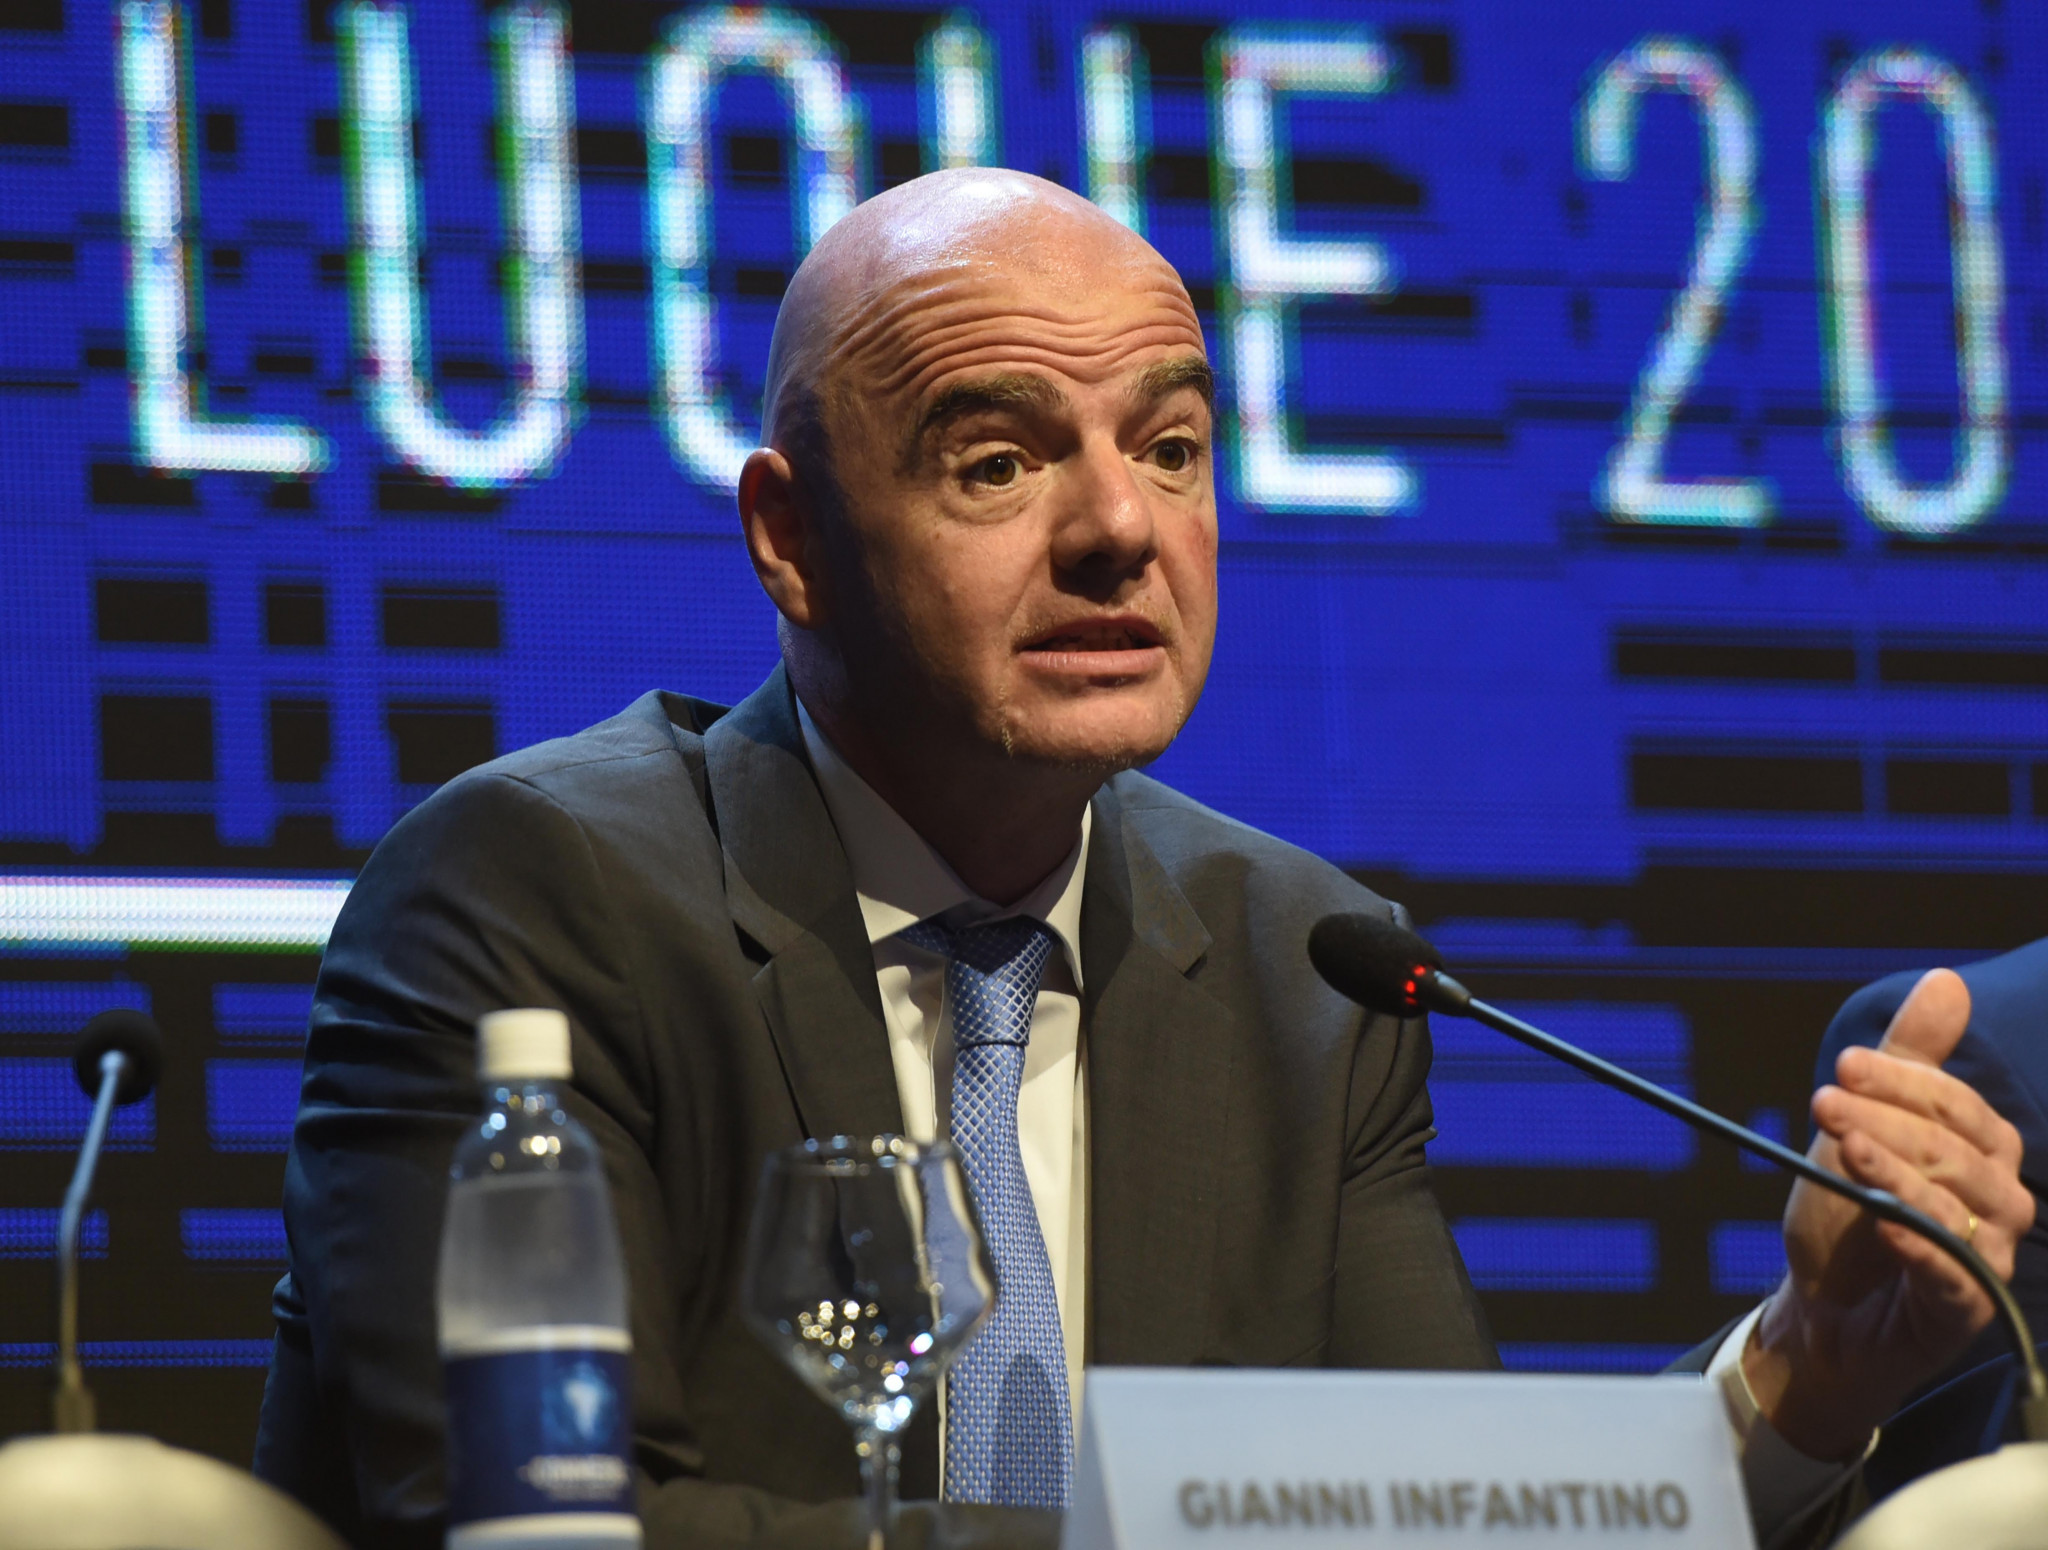 Infantino casts doubt on possible 2022 World Cup growth to 48 teams